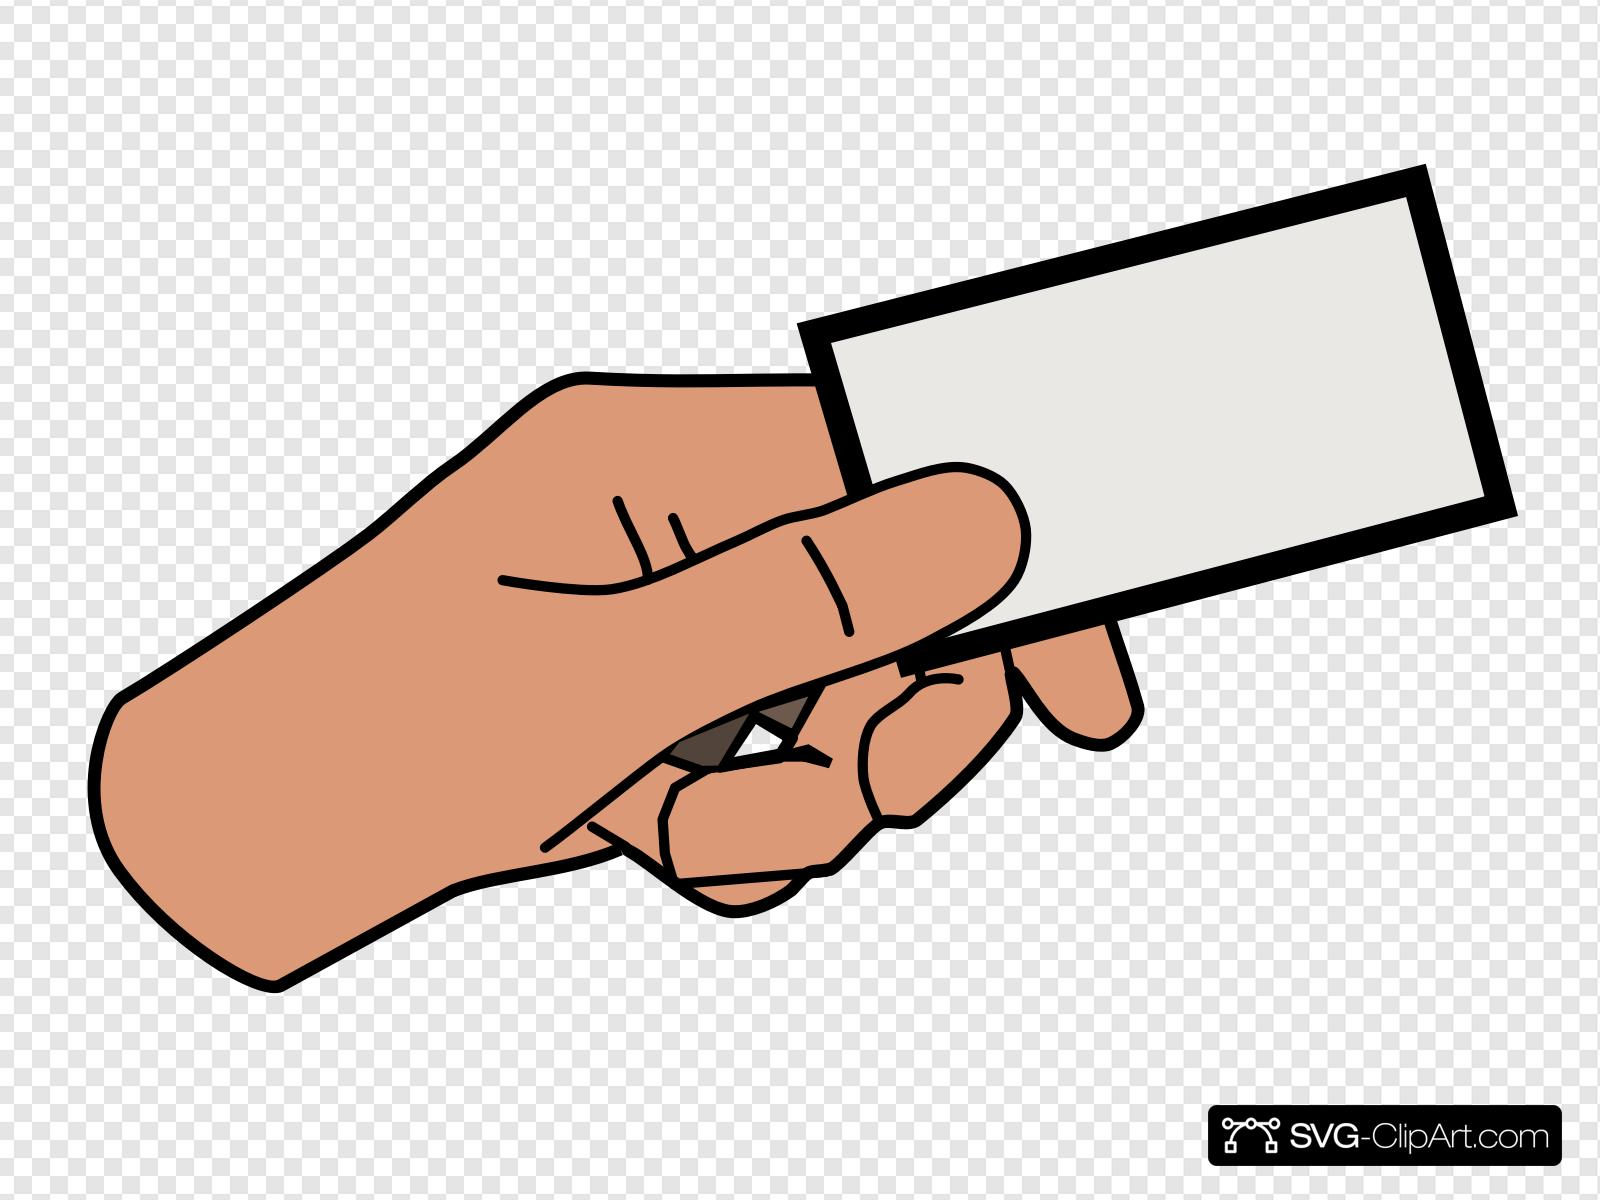 Simple Cartoon Hand Holding Card Clip art, Icon and SVG.